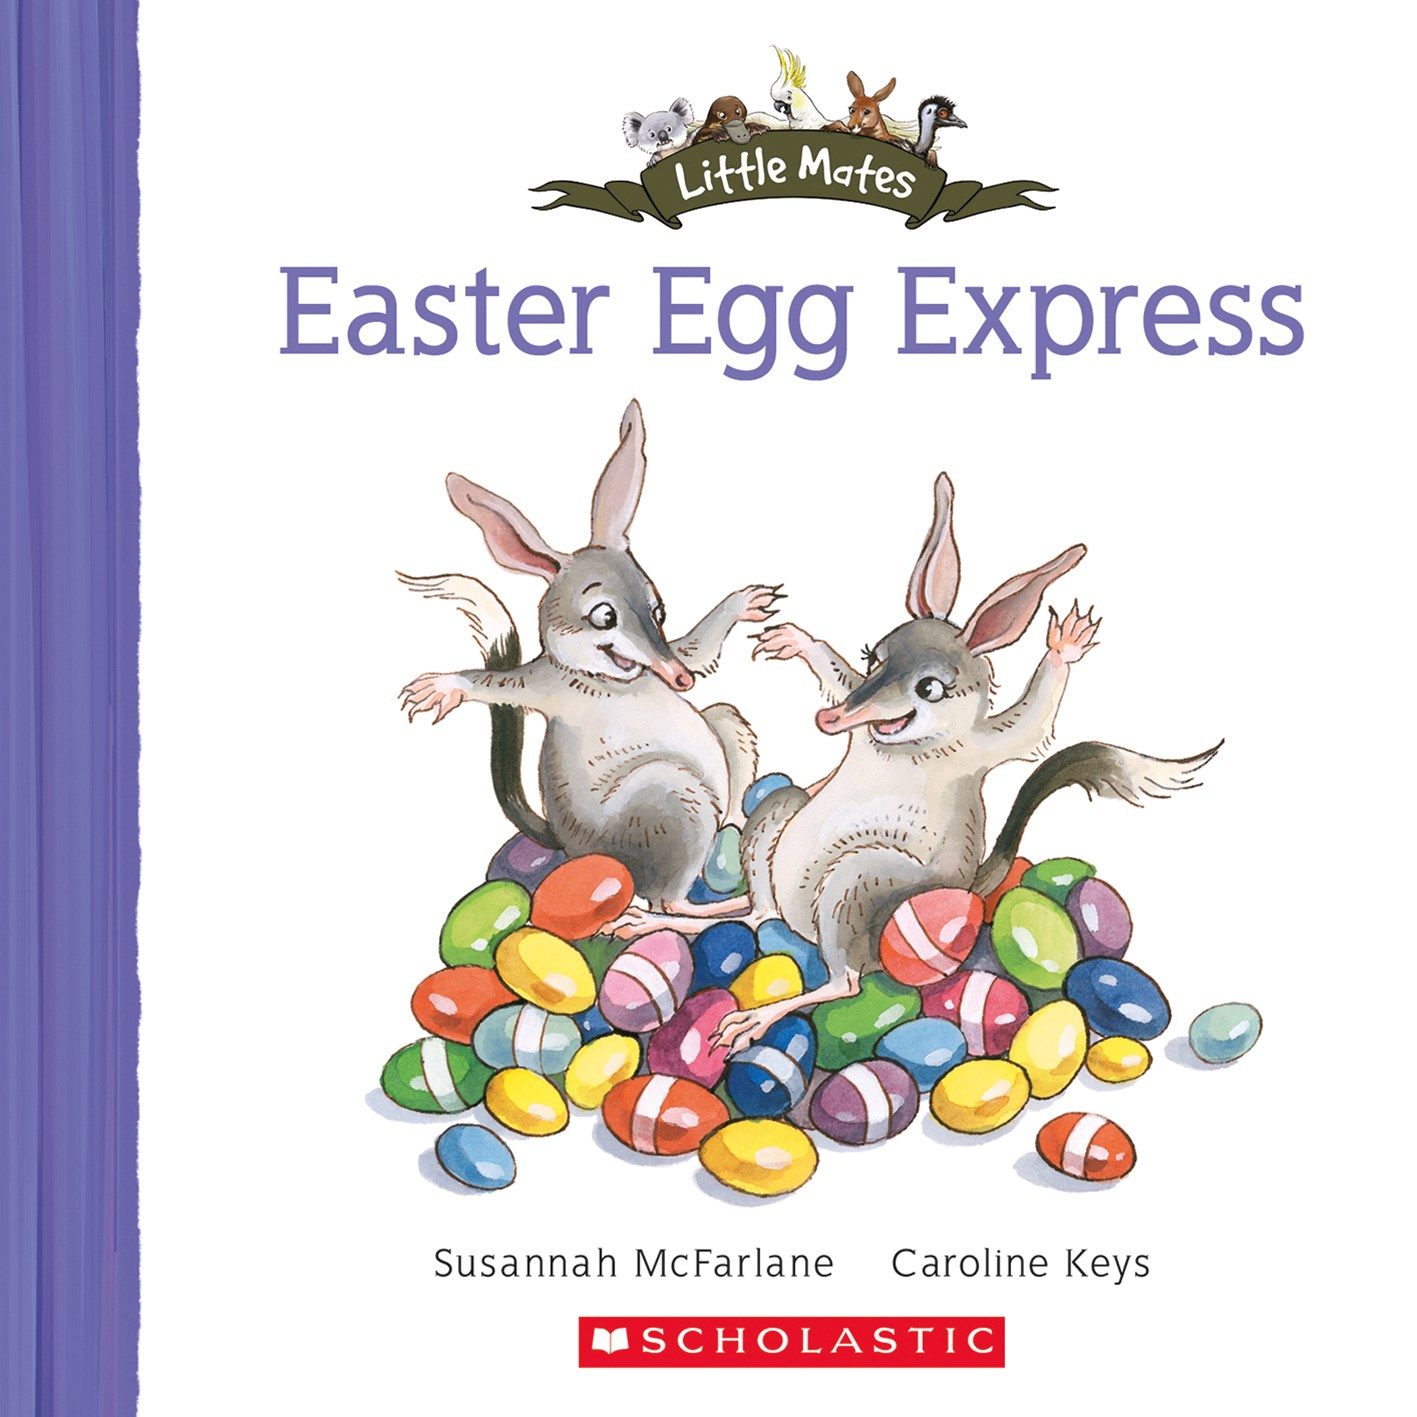 Little Mates: Easter Egg Express